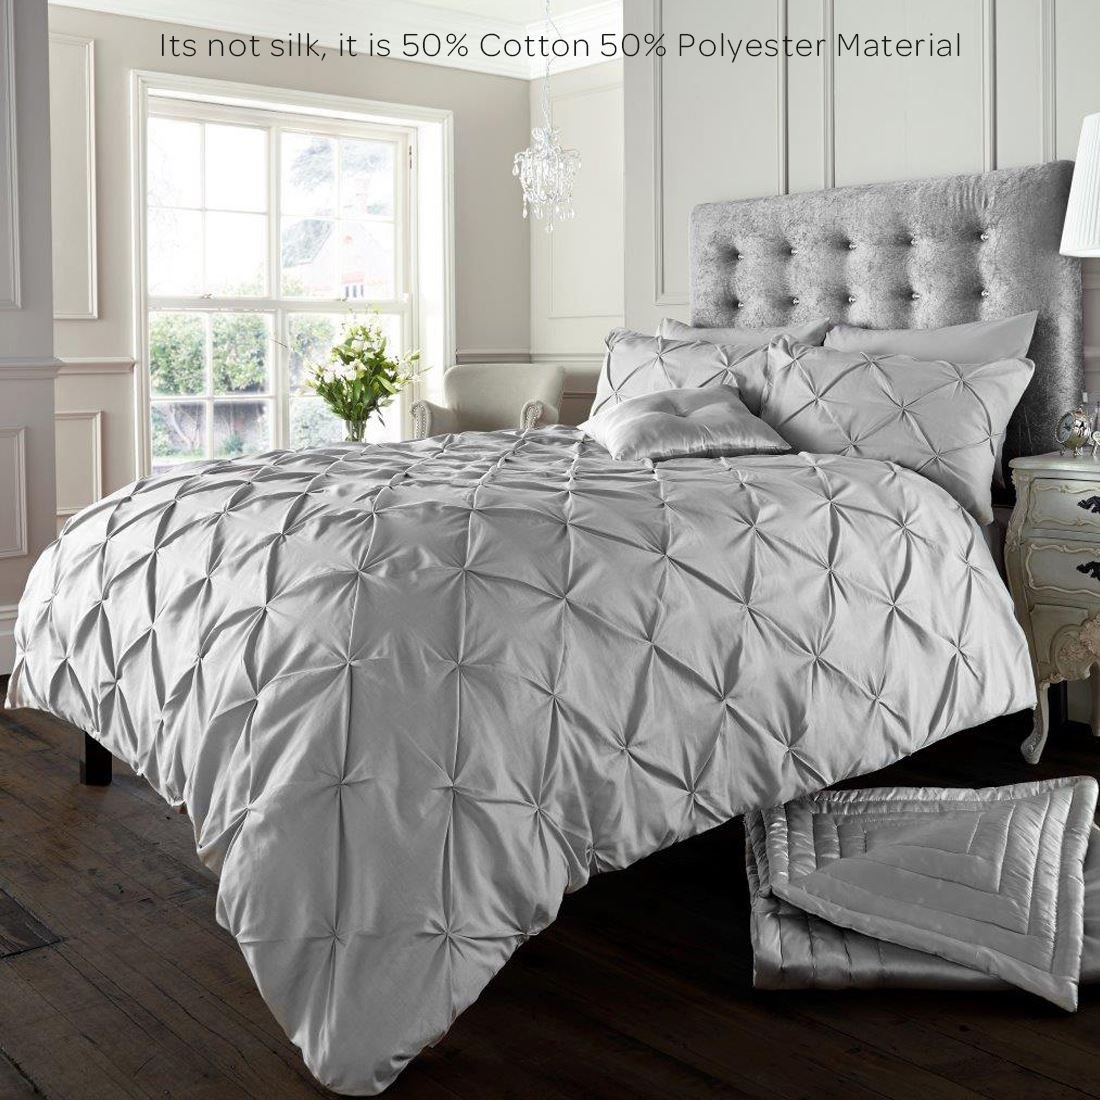 Alford Duvet Cover With Pillowcase Quilt Cover Bedding Set Silver